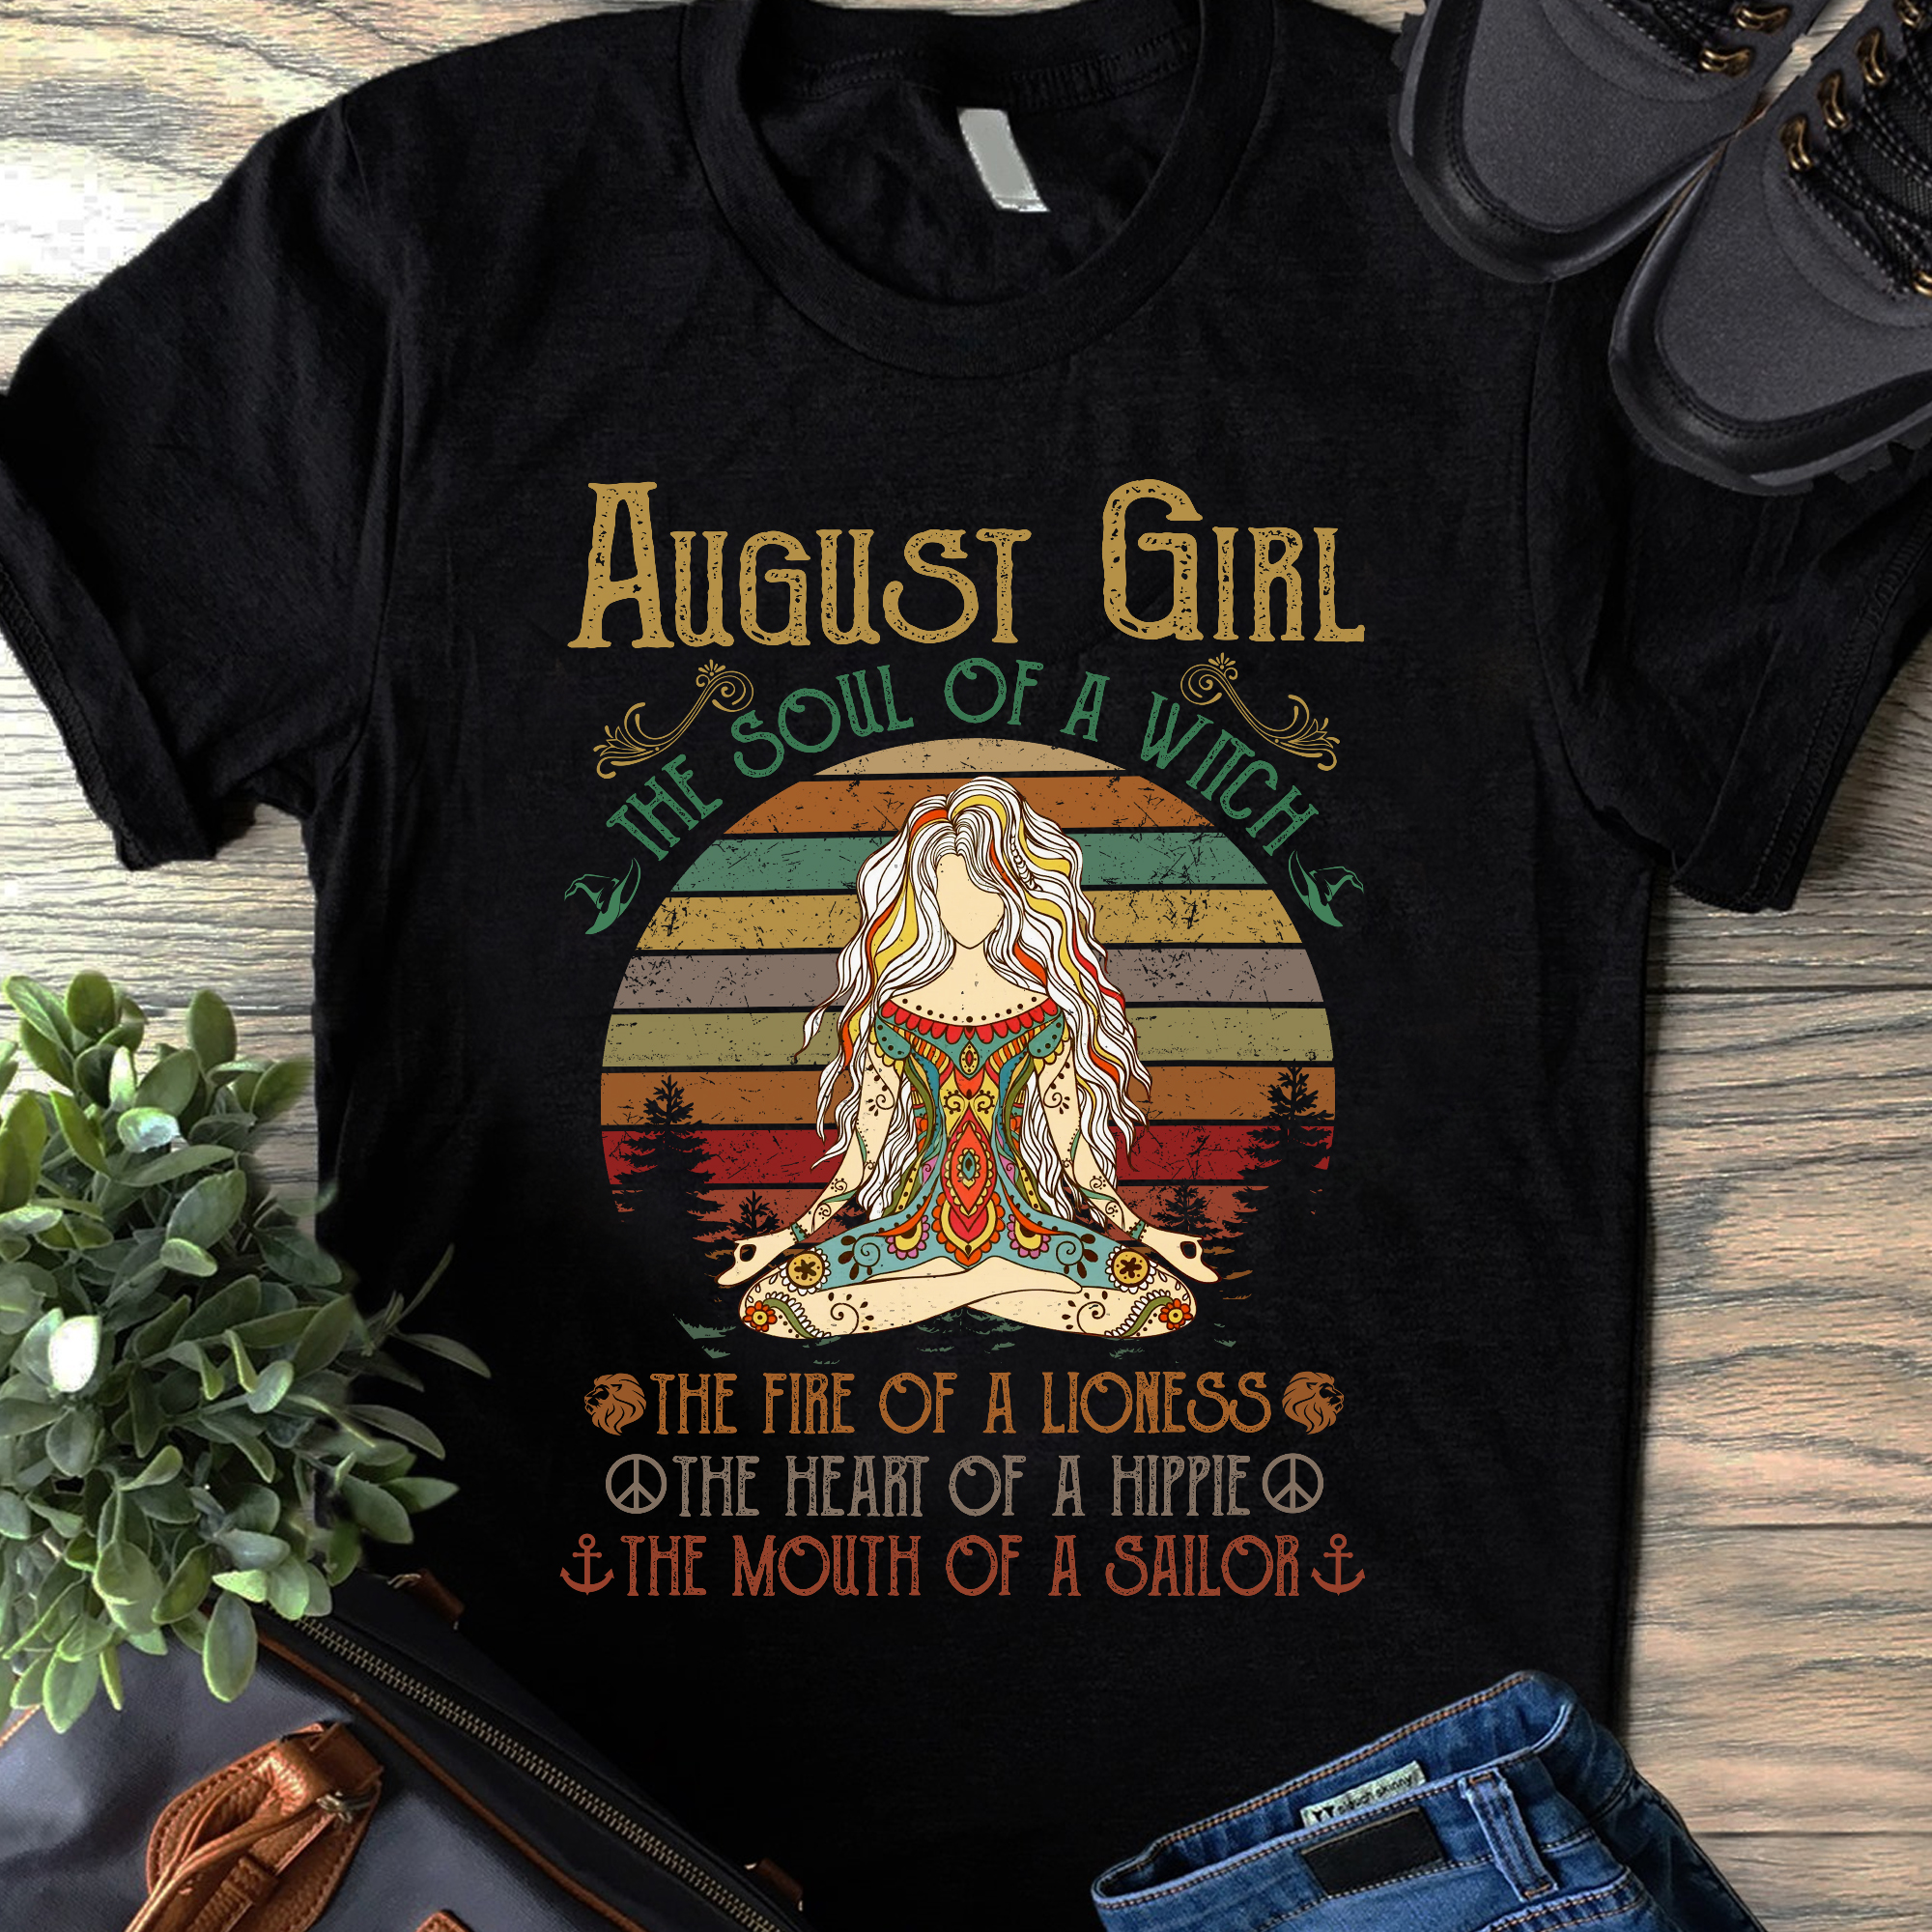 Vintage Yoga August Girl Shirt The Soul Of A Witch